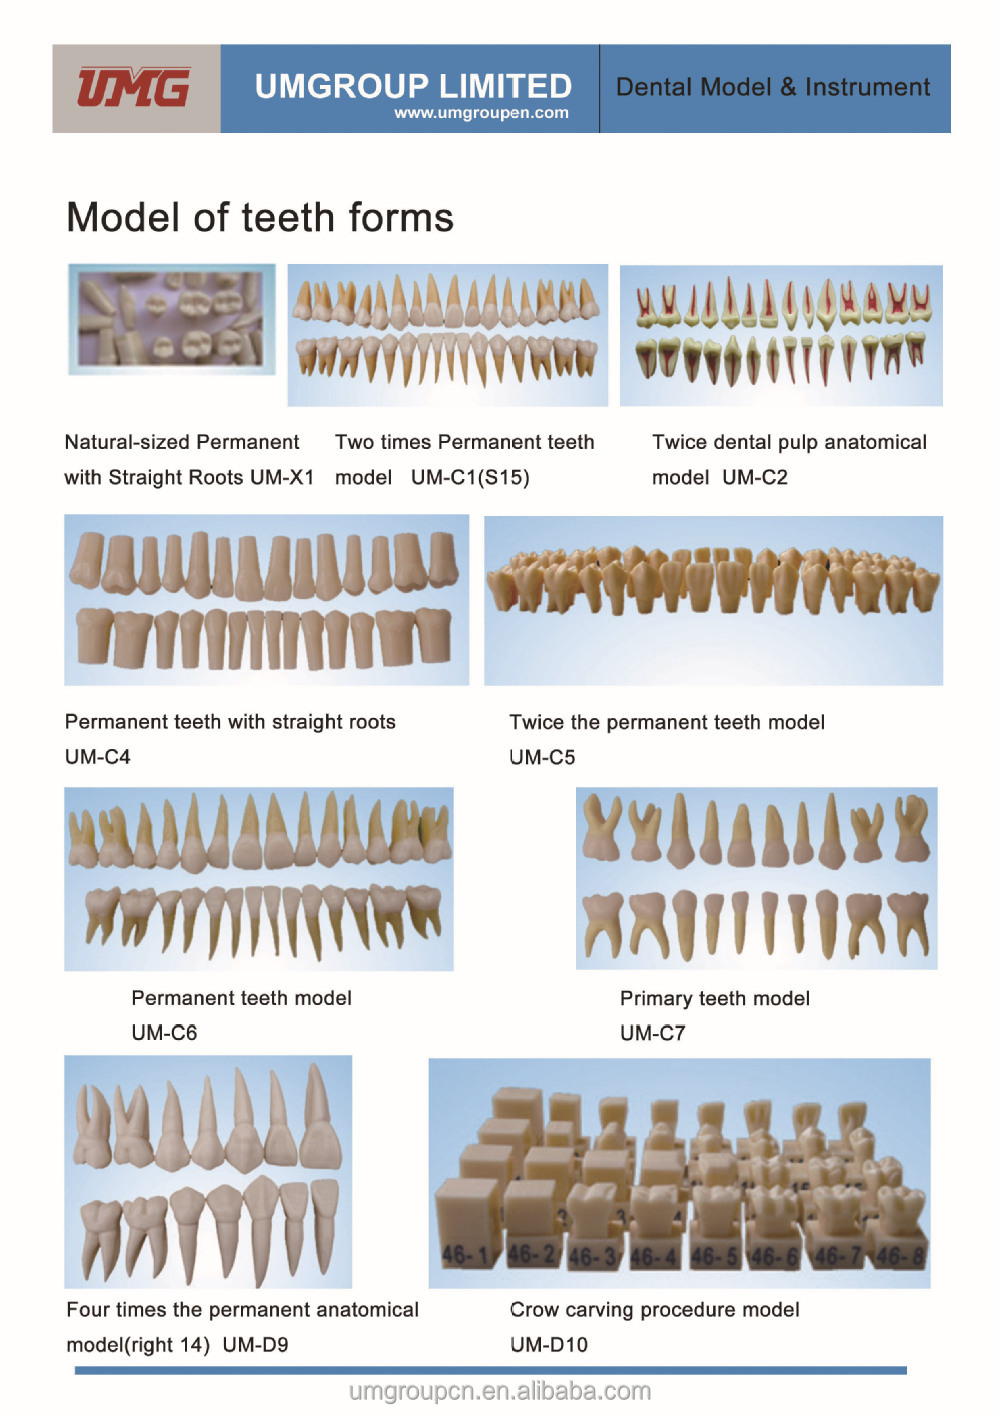 China wholesale Straight roots model dental teeth model from UMG